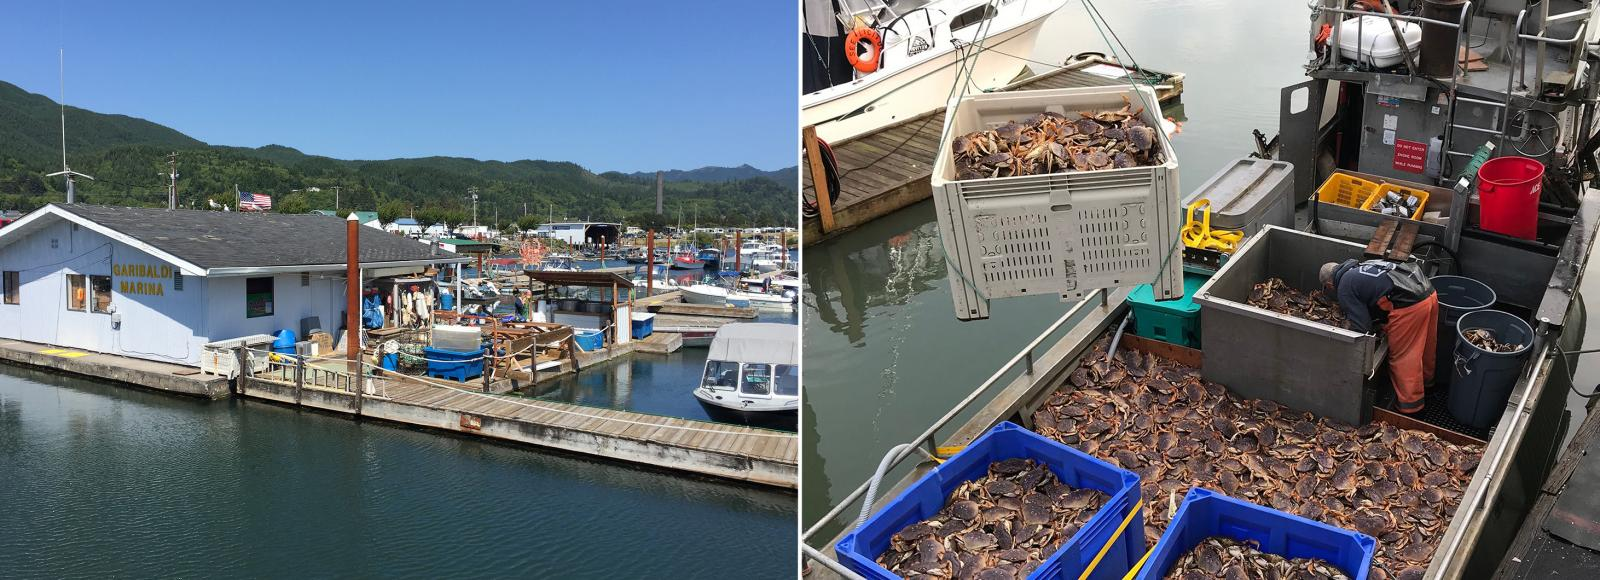 A marina in the left image; a crate of crabs suspended above a boat full of crabs in the right photo.